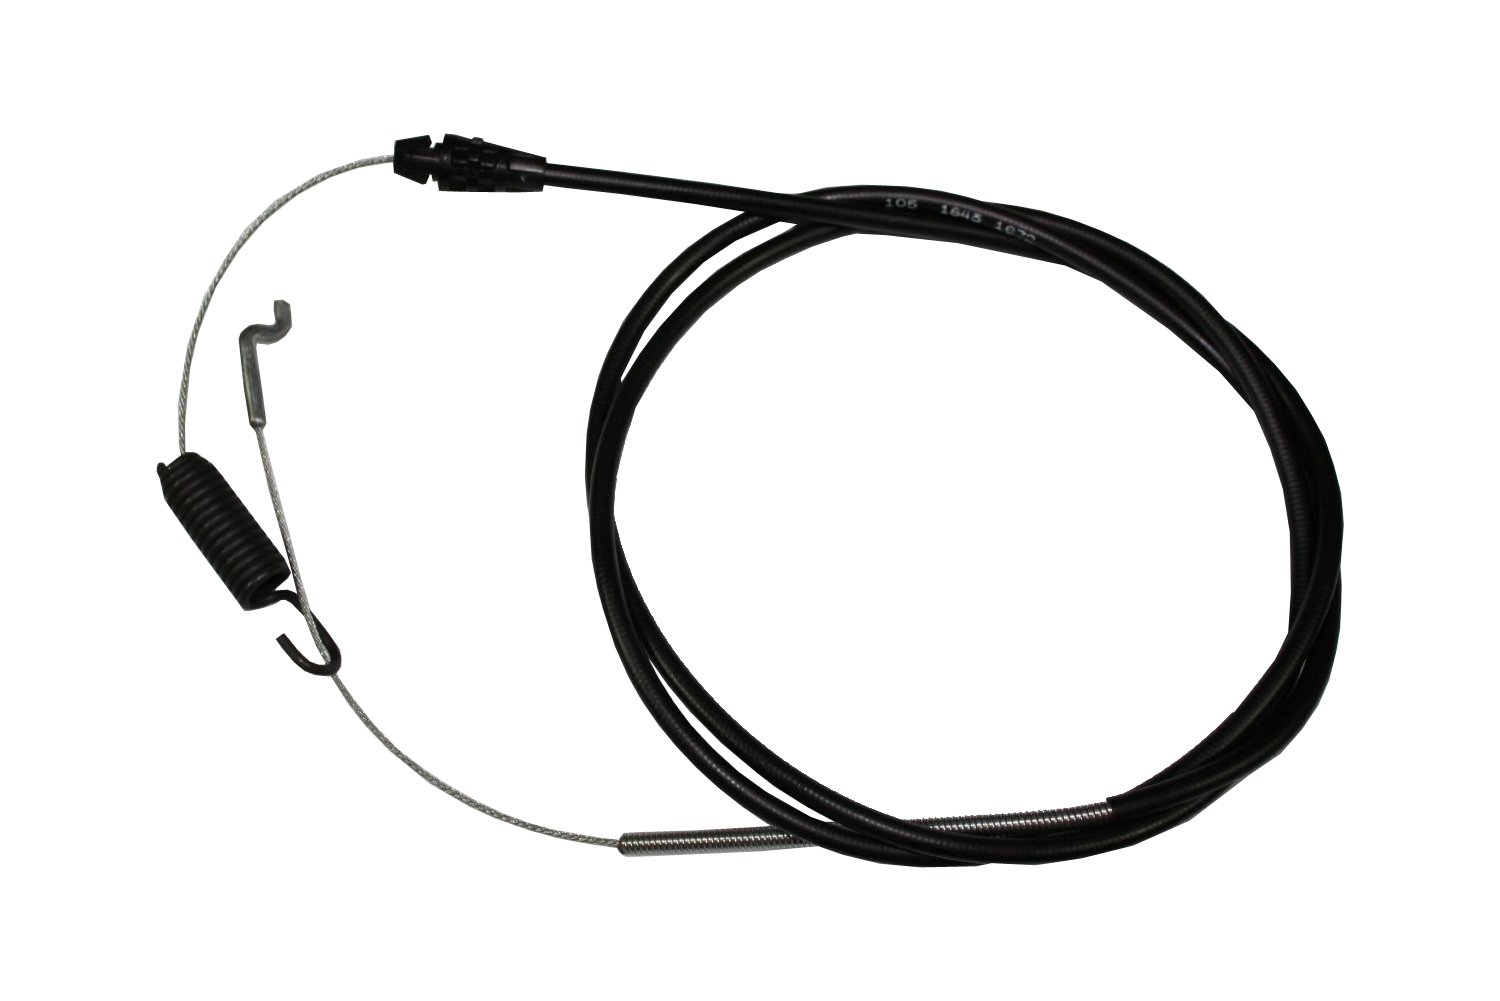 Toro 105-1845 Traction Control Cable